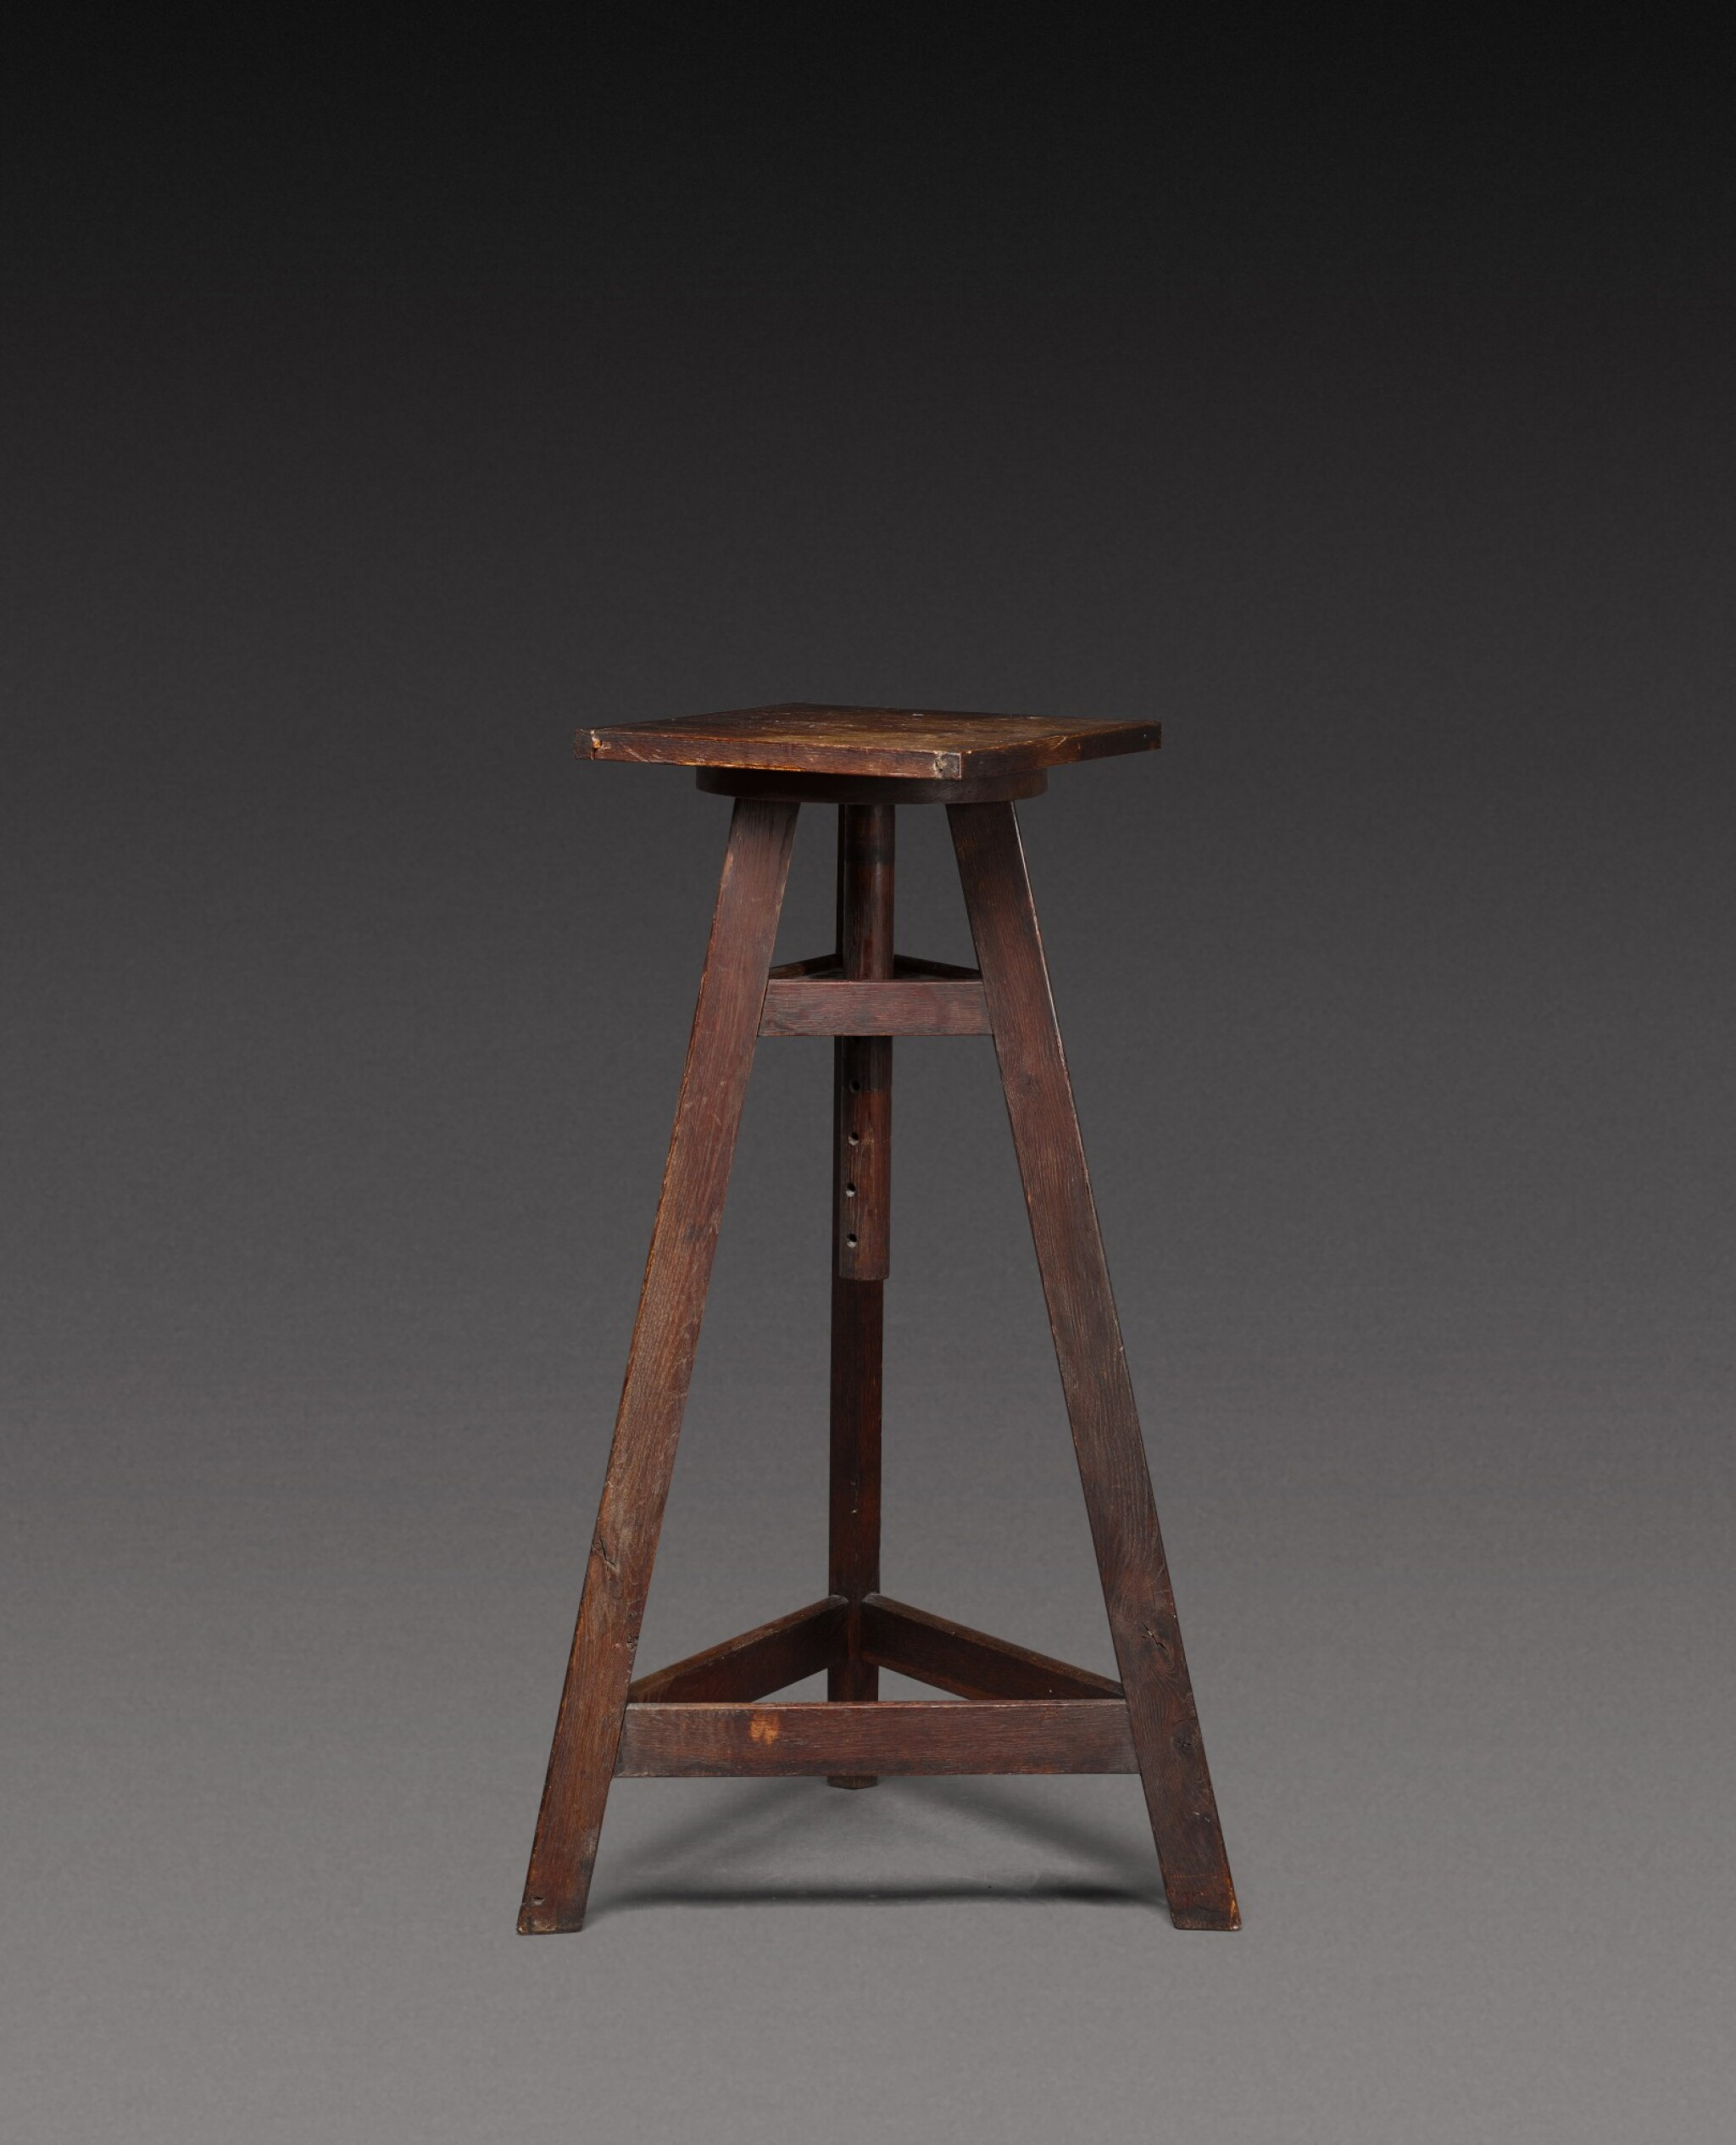 View 1 of Lot 181. A sculptor's oak tripod stand, probably French, 20th century.